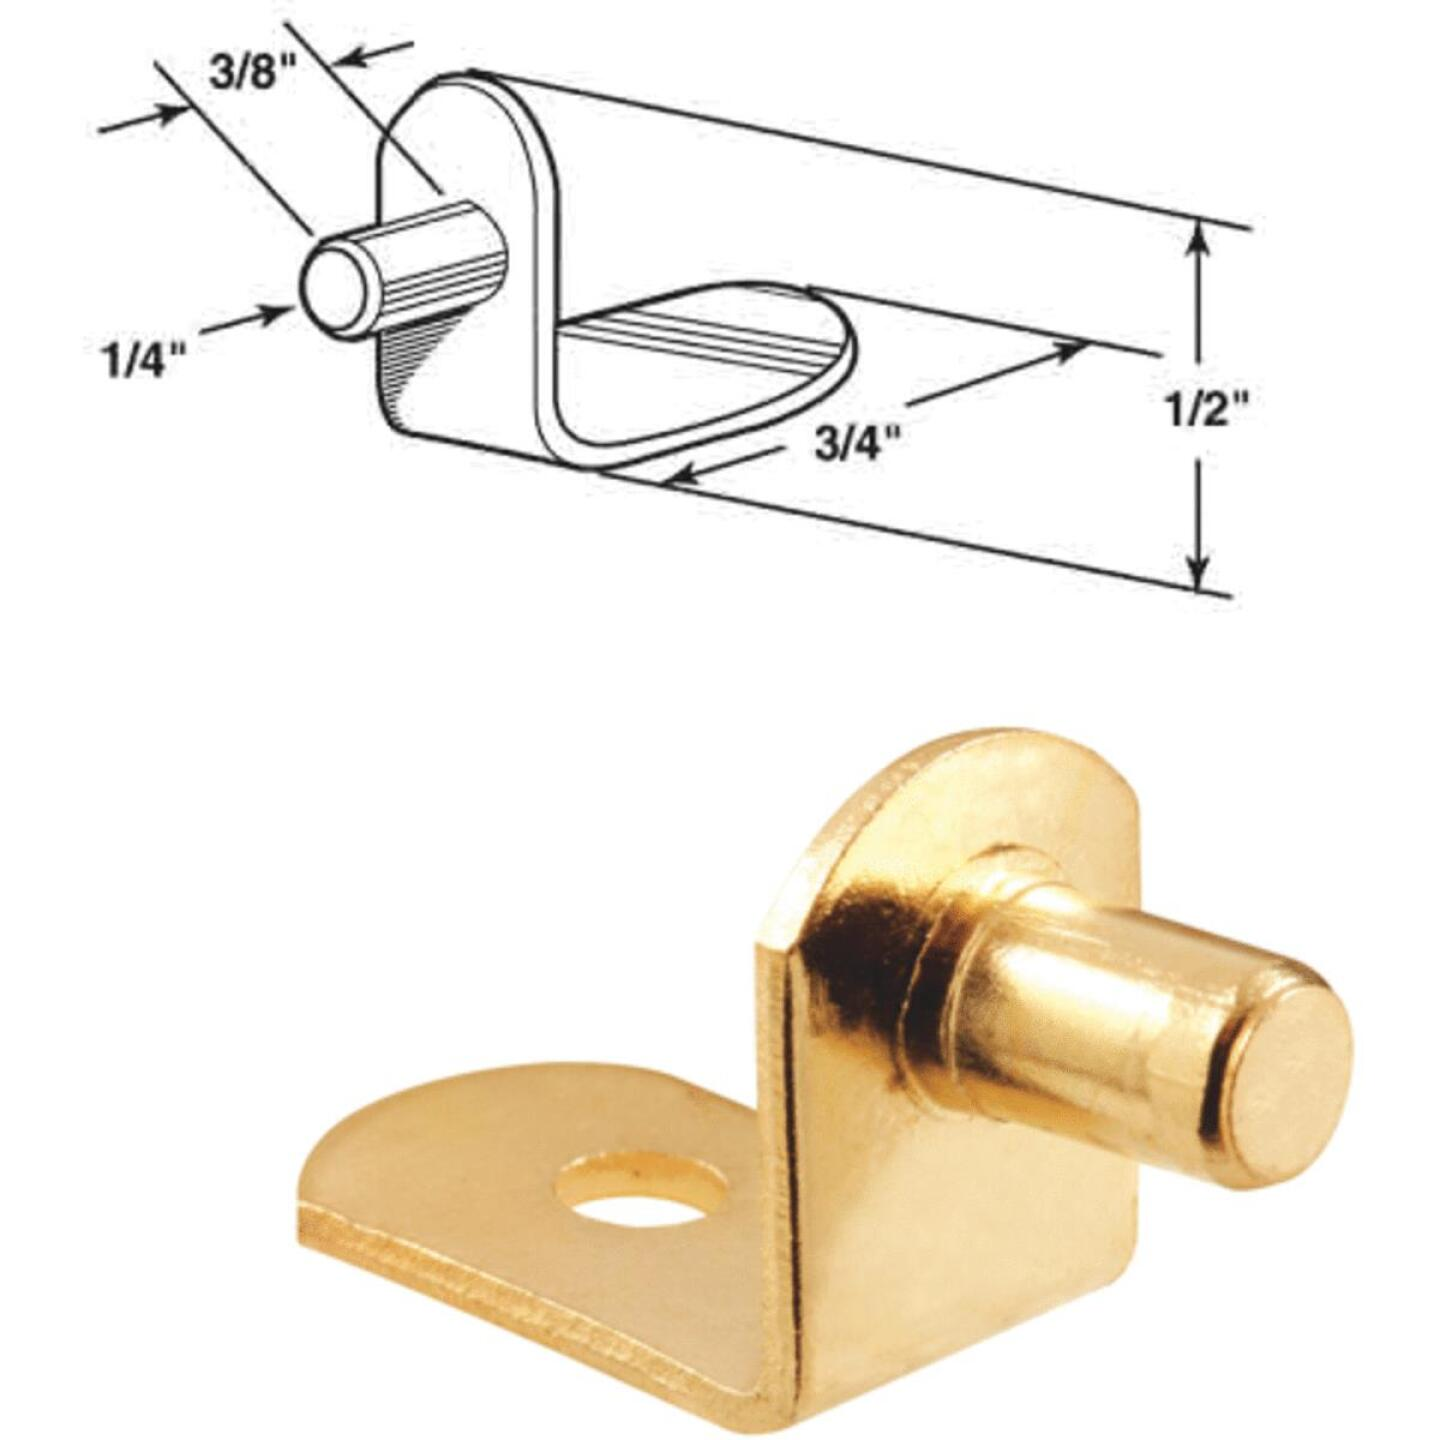 Prime-Line 1/4 In. Brass Metal Shelf Support (8-Count) Image 1